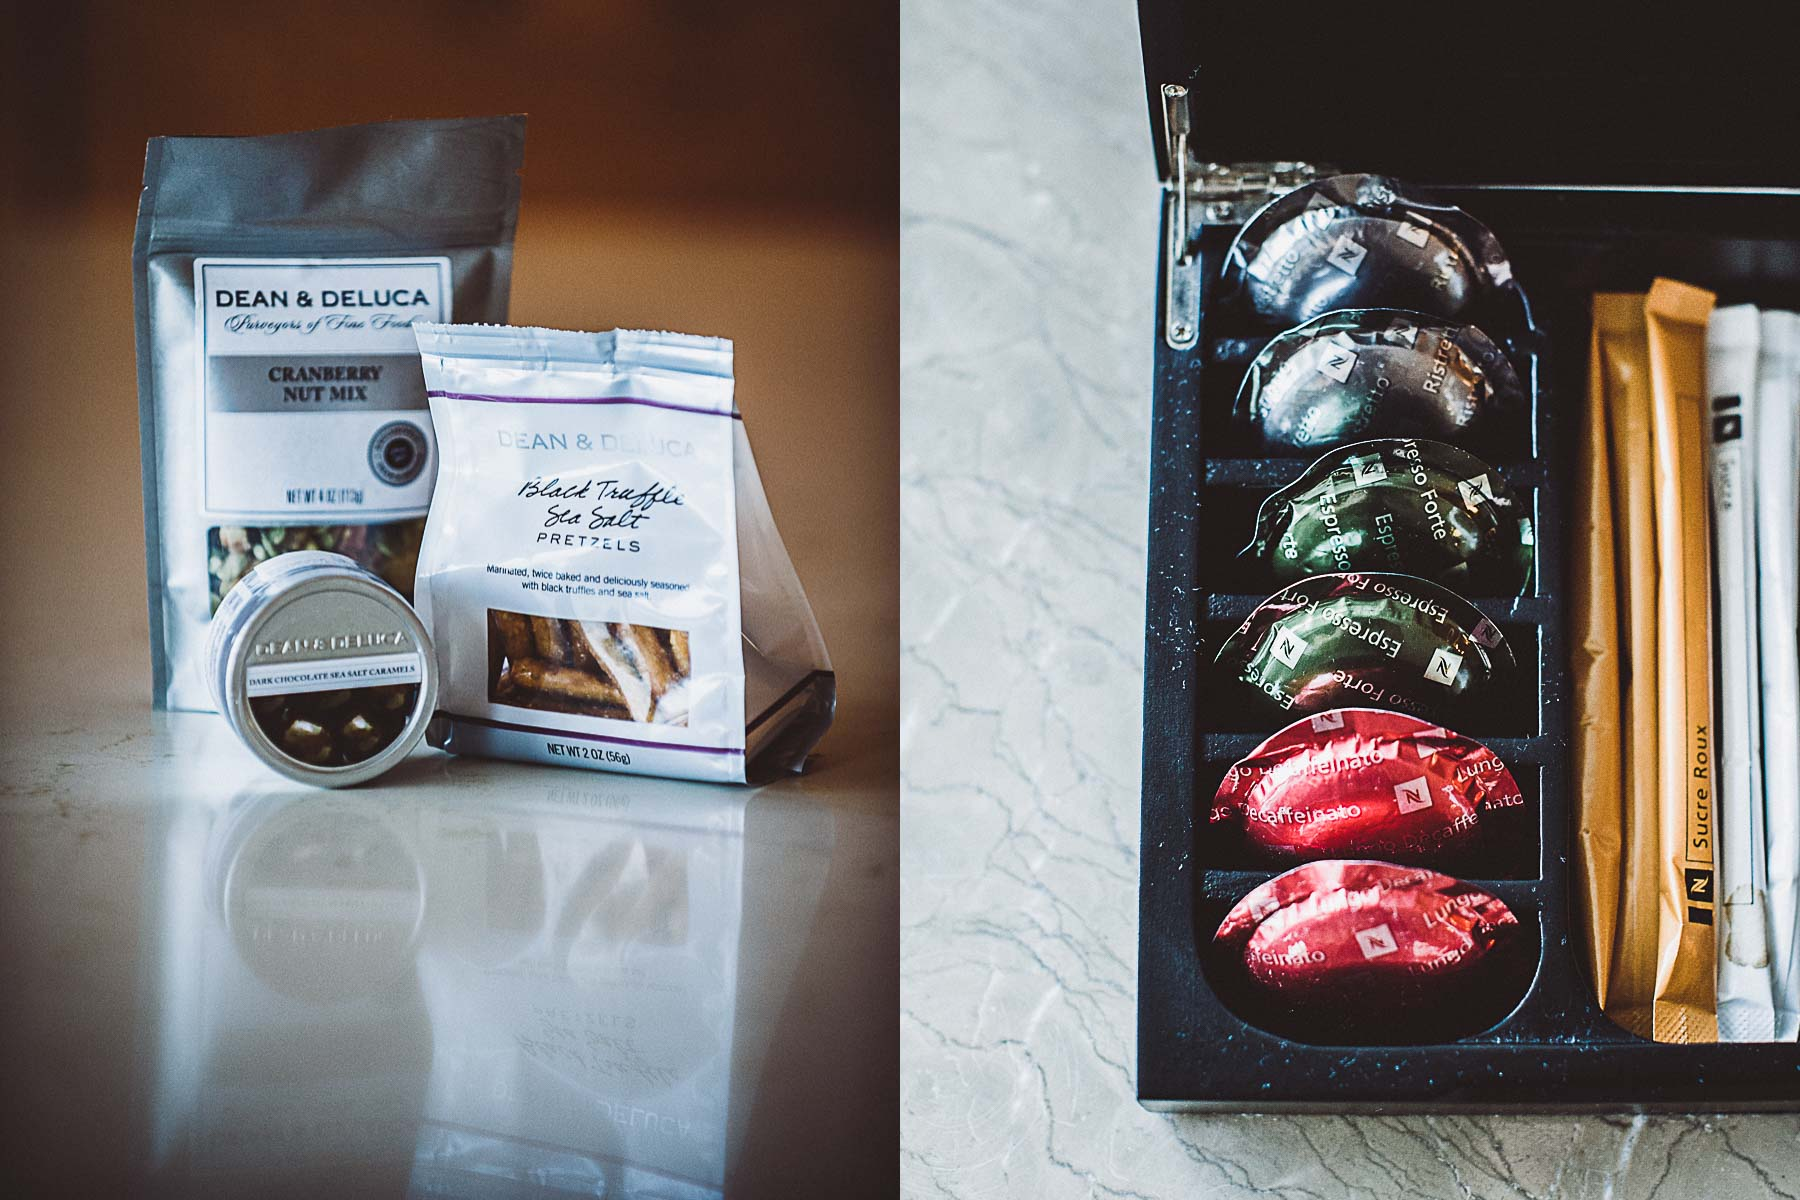 The guest room's snack and coffee offerings.